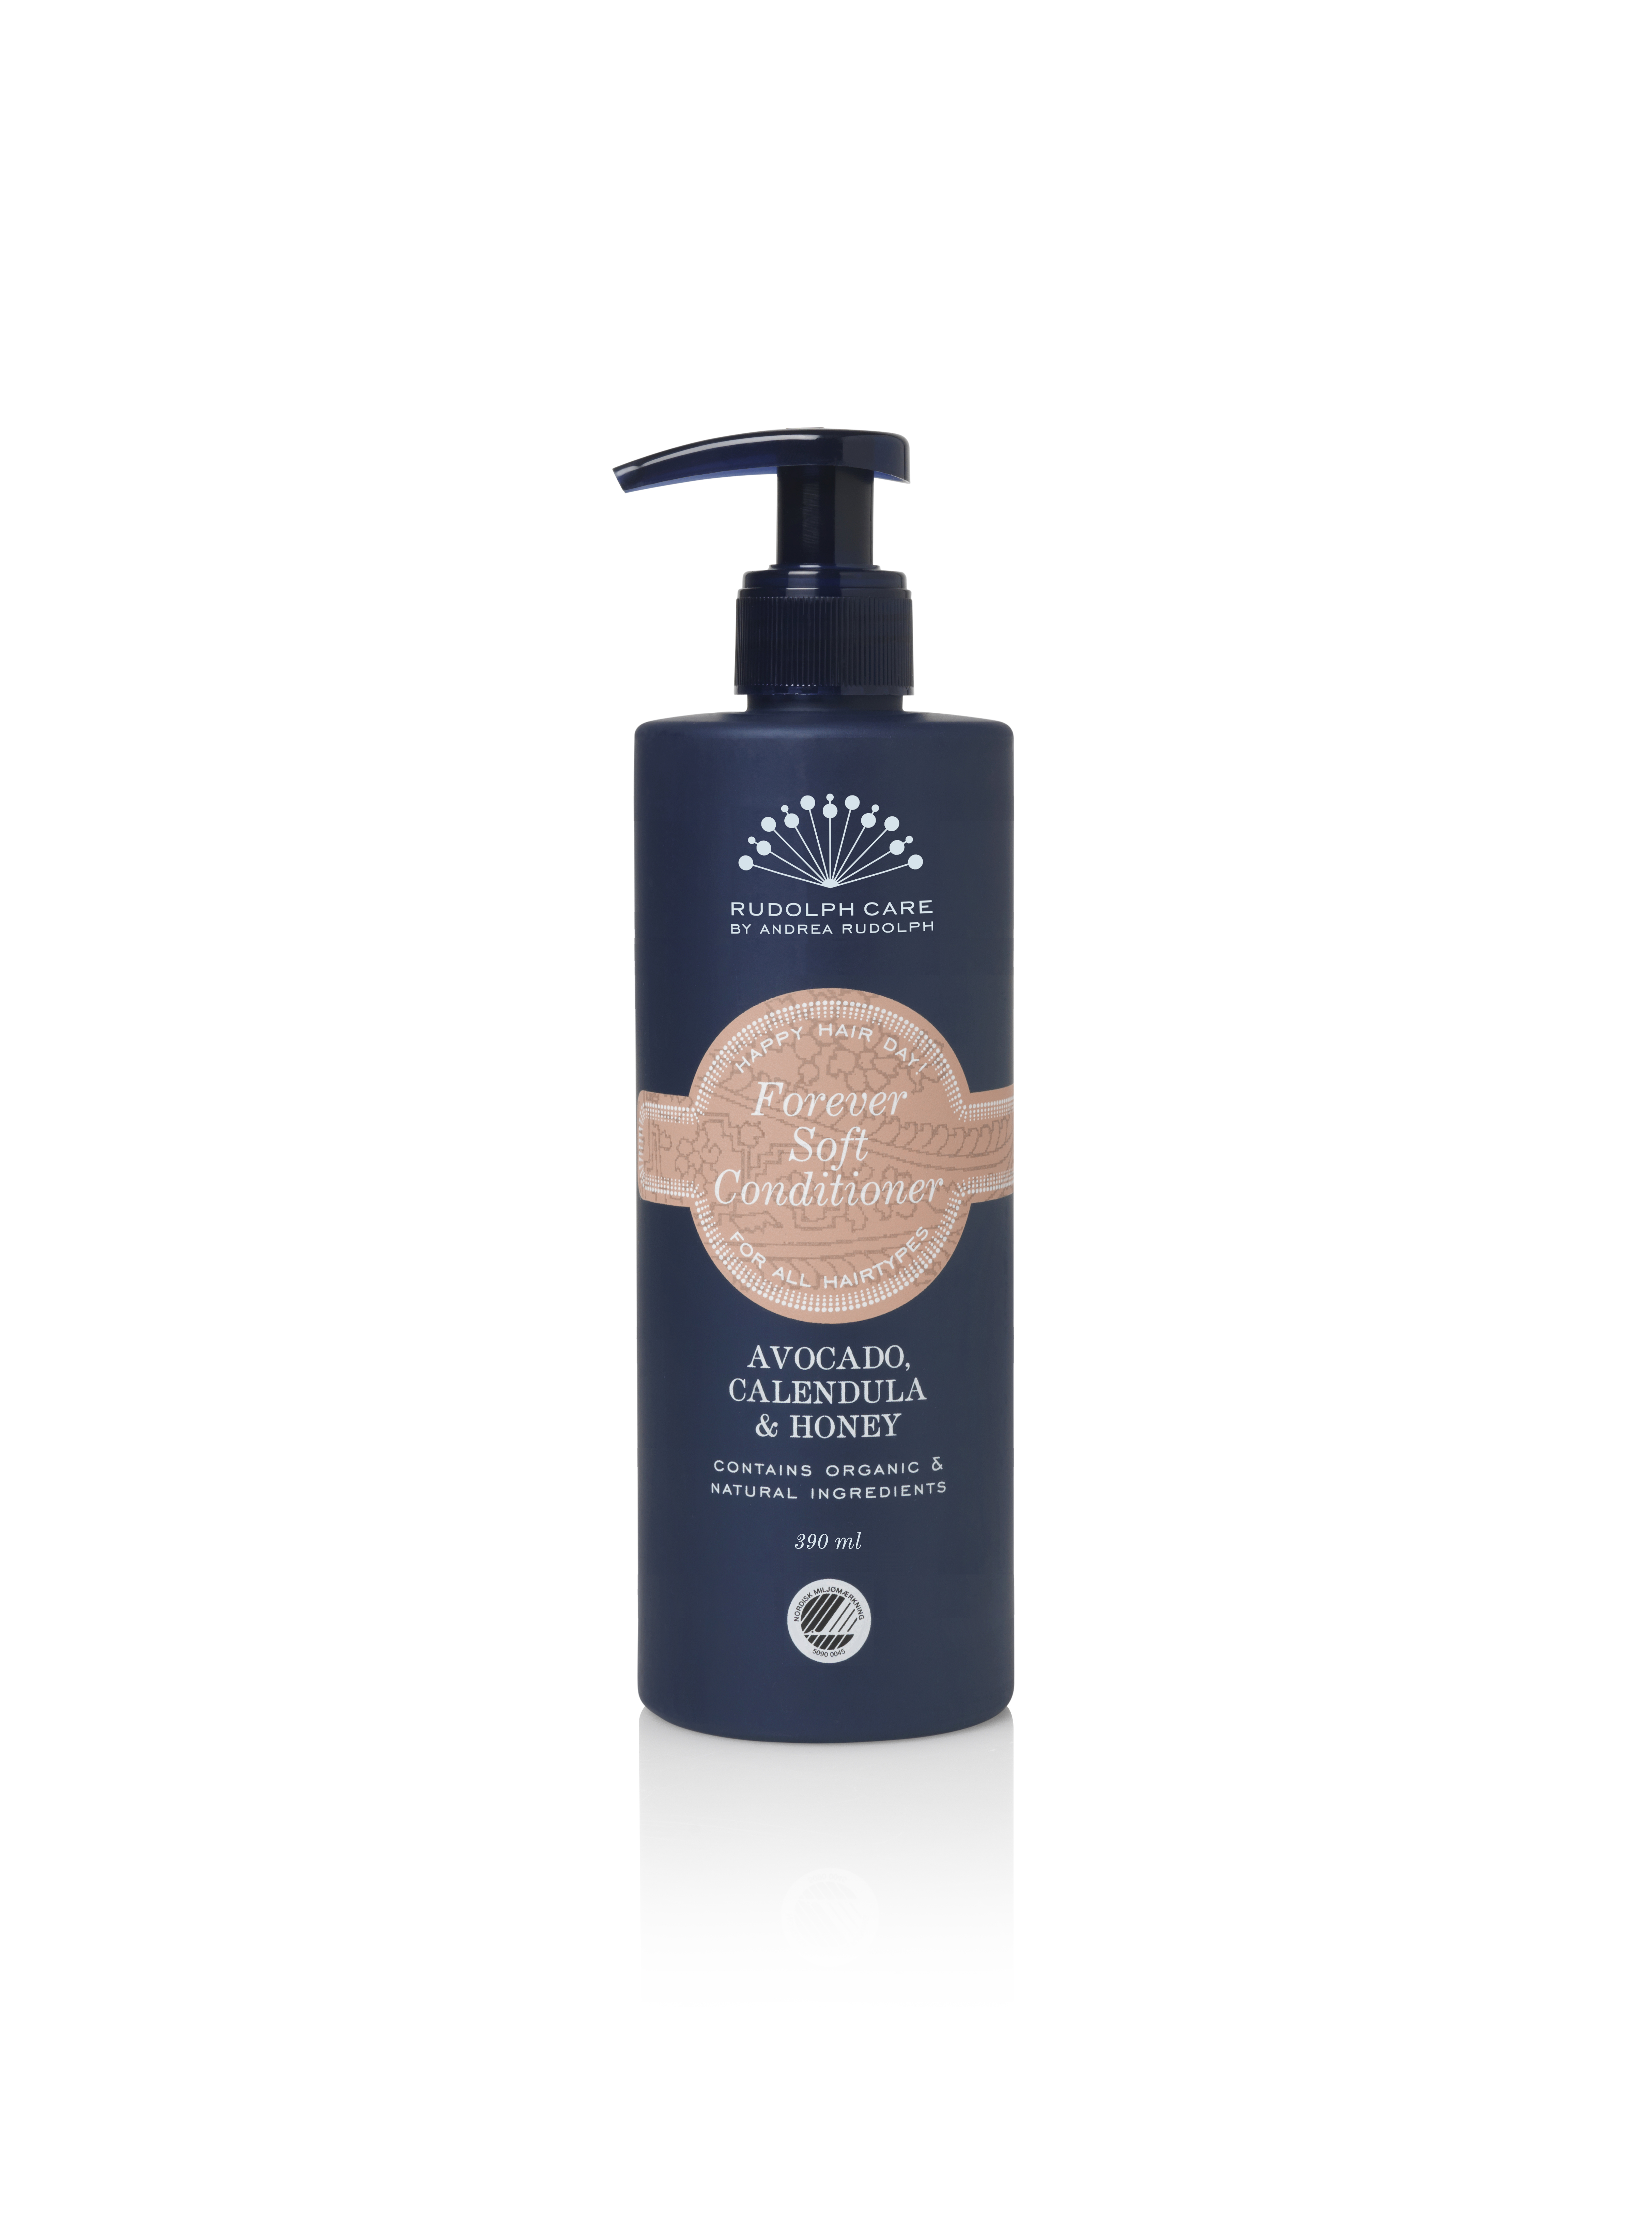 Rudolph Care Forever Soft Conditioner, 390 ml